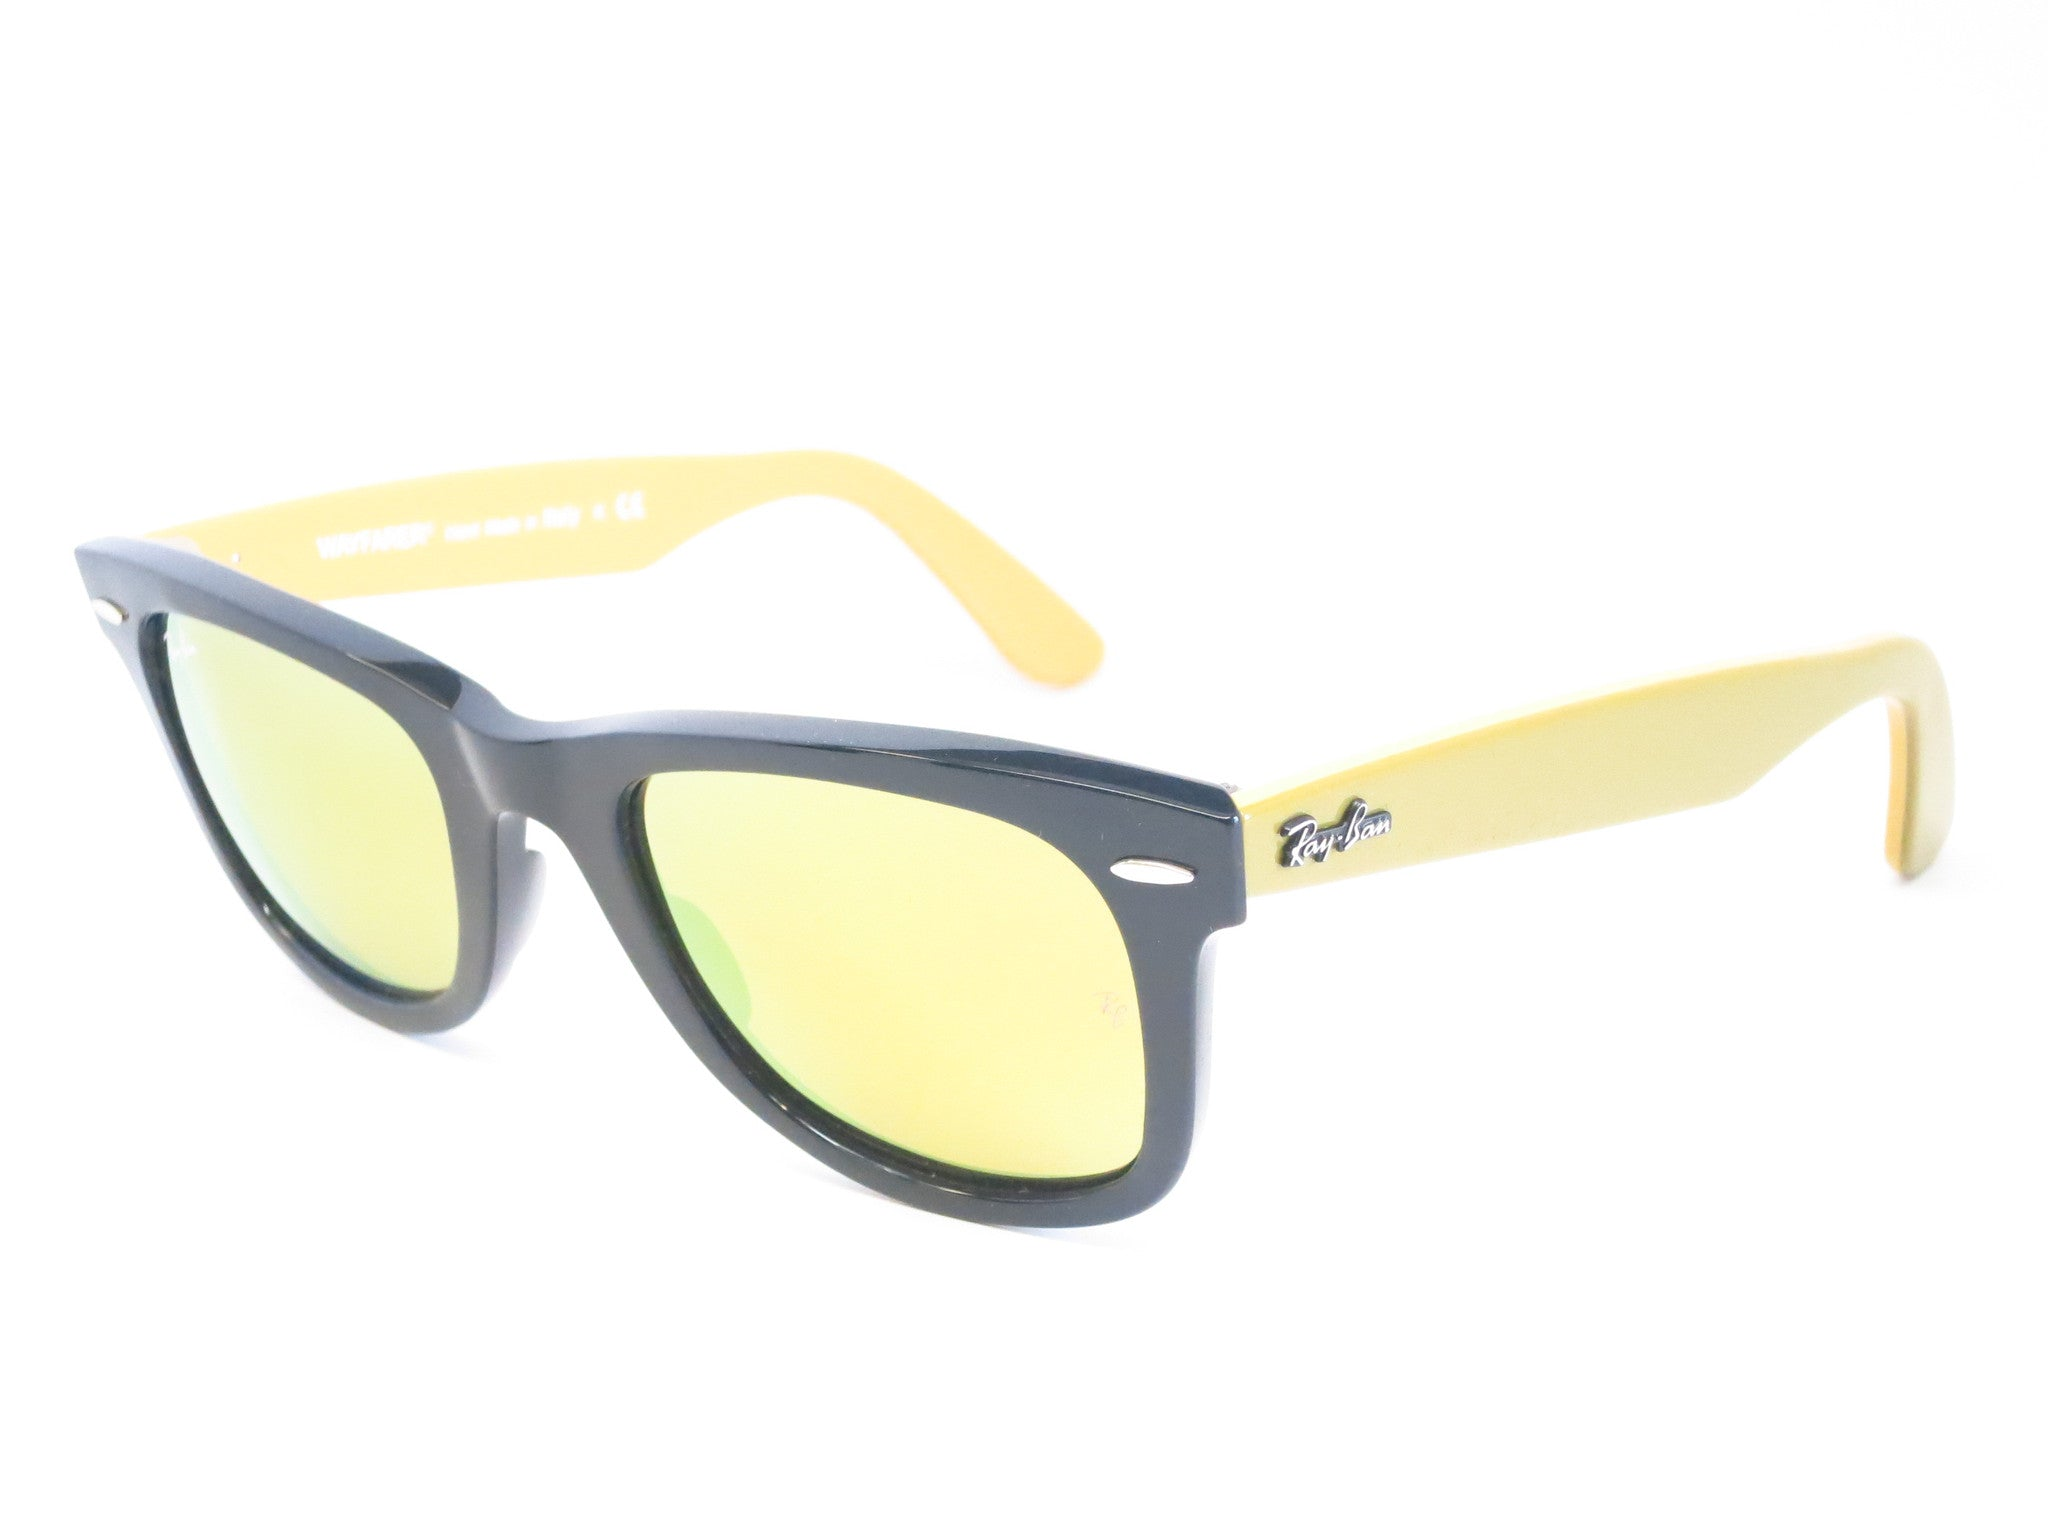 ray ban rb2140 wayfarer sunglasses yellow  ray ban rb 2140 original wayfarer 1173/93 black sunglasses eye heart shades